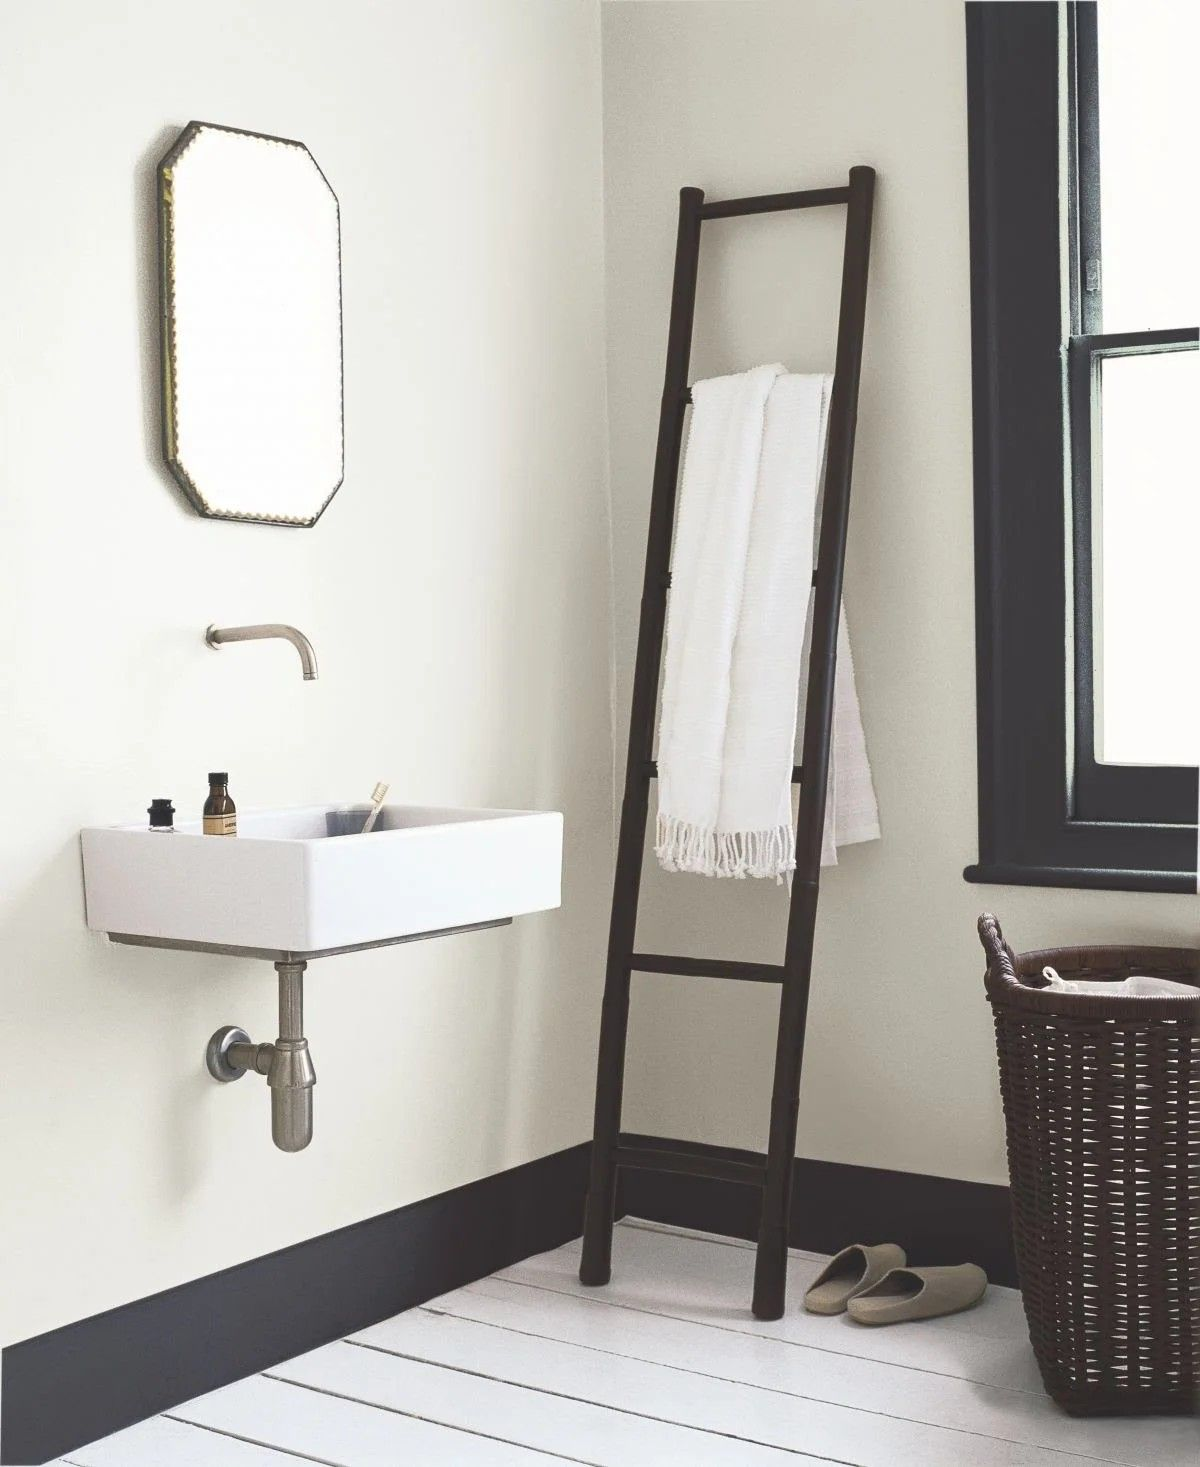 Pin By Sister Annette On Powder Room Latrine Washroom Bathrooms Privy Bathroom Paint Colors Painting Bathroom Dulux Soft Stone